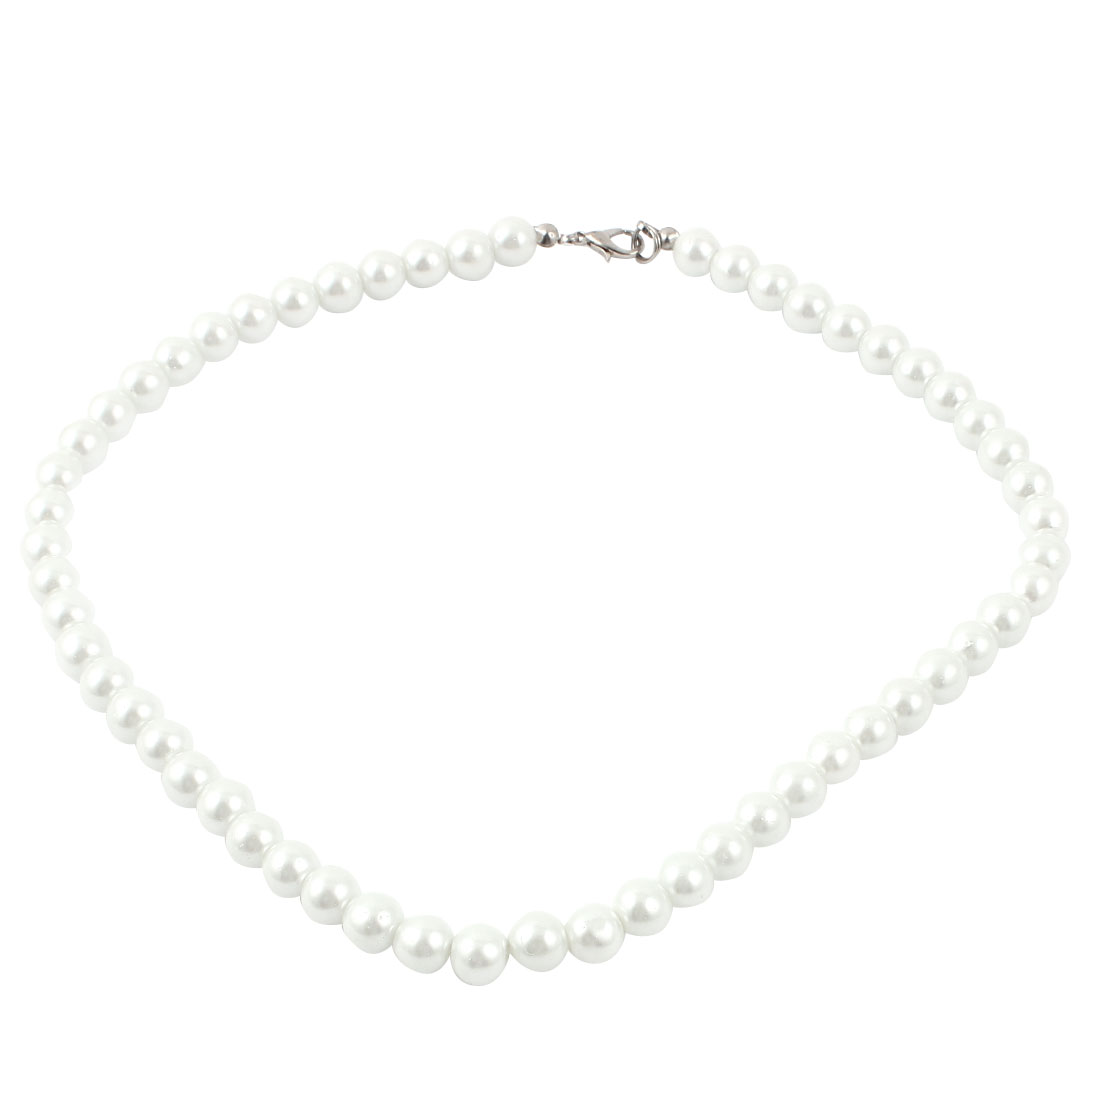 Ladies Single Strand Clasp Round Imitation Pearl Necklace Jewlery Off White